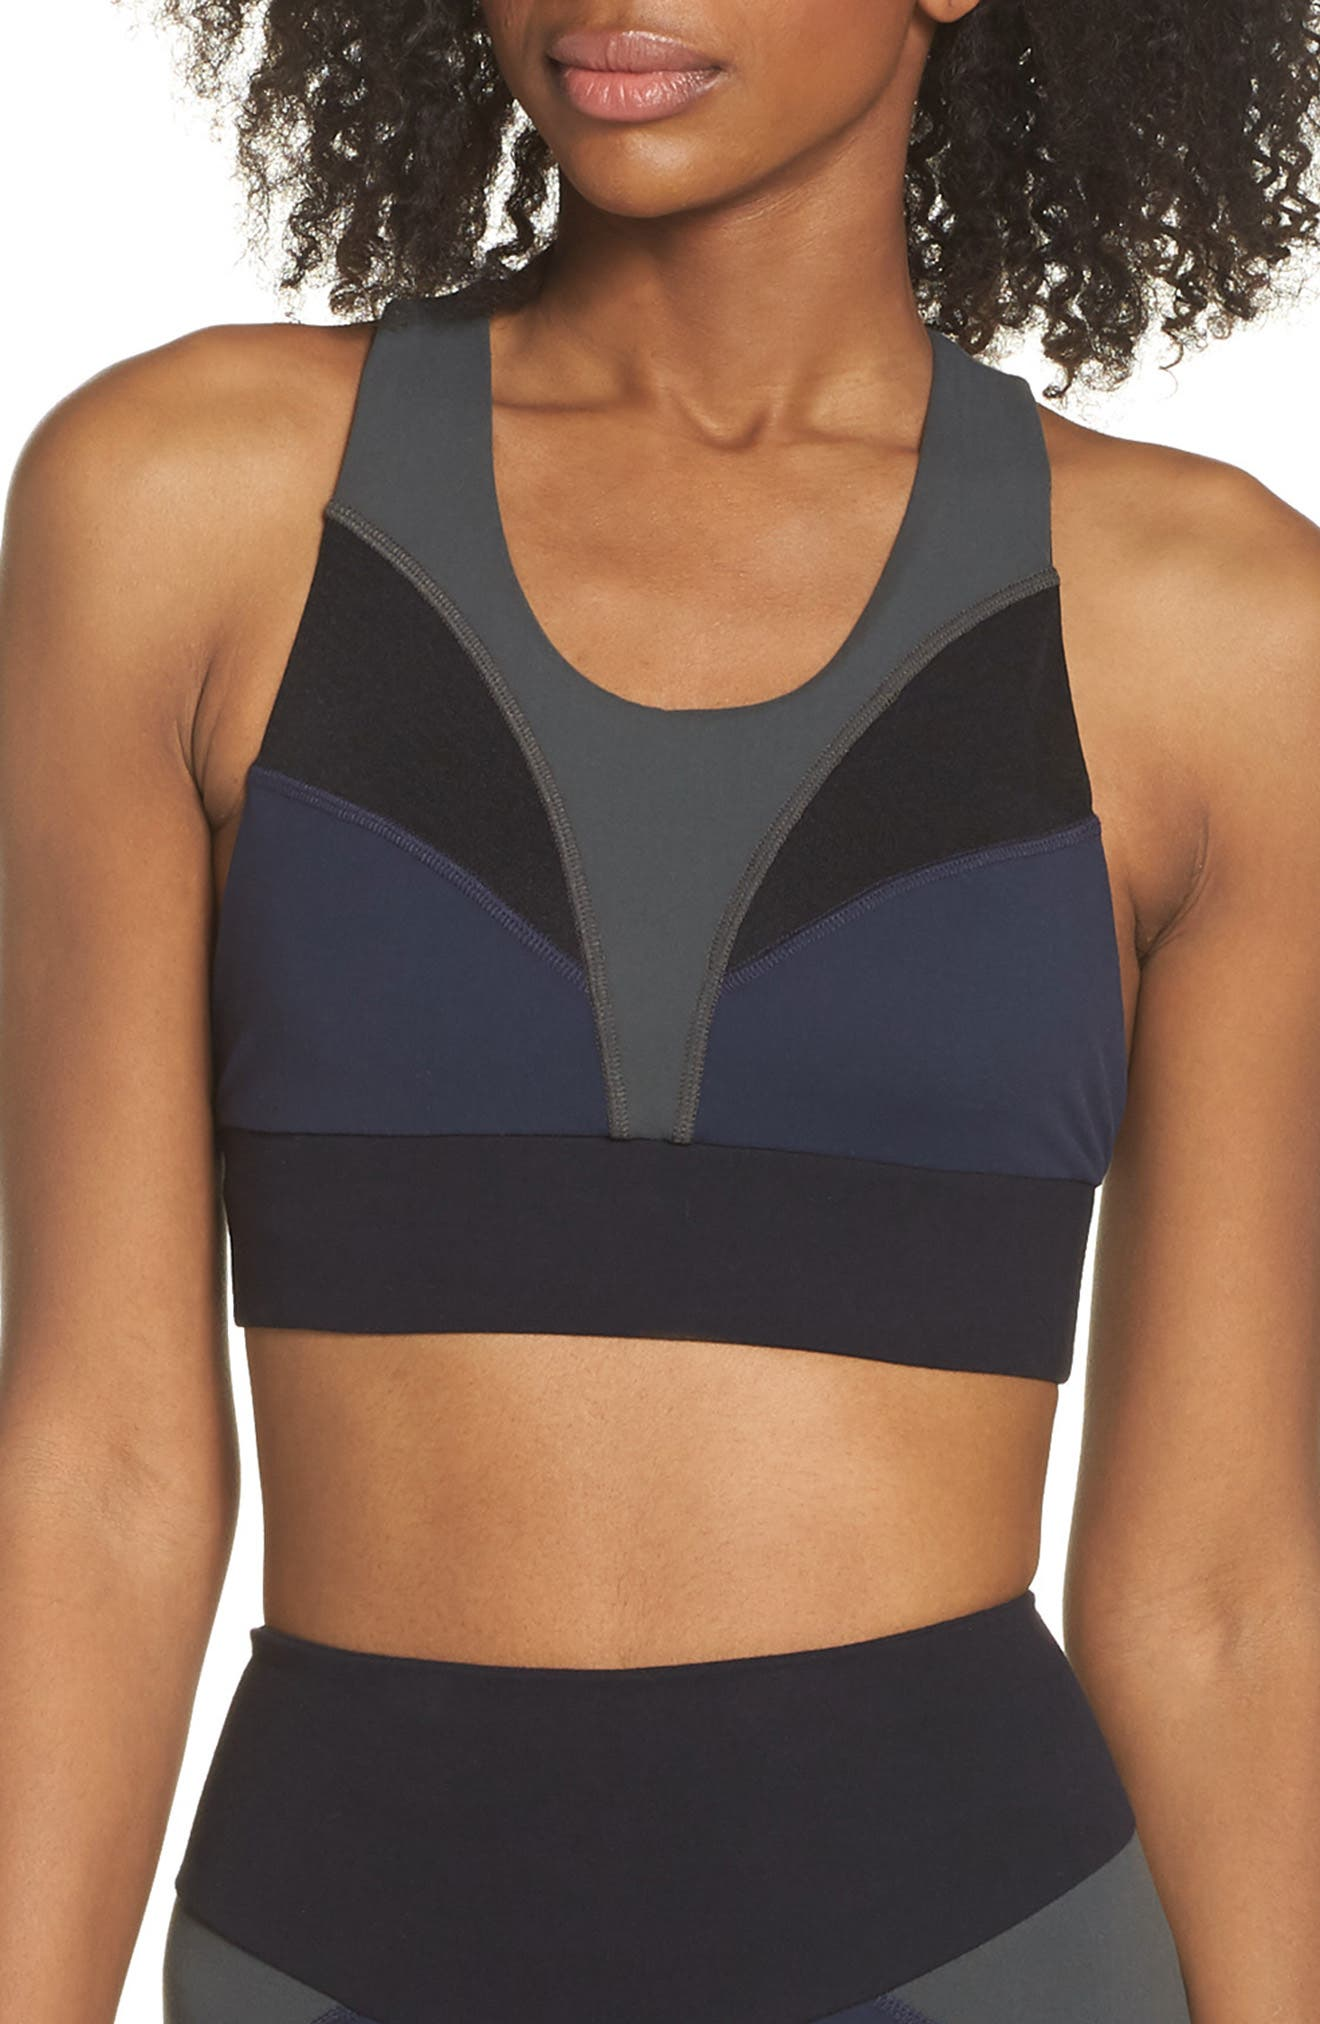 BoomBoom Athletica Brushed Tricolor Bra,                             Main thumbnail 1, color,                             Navy/ Black/ Green